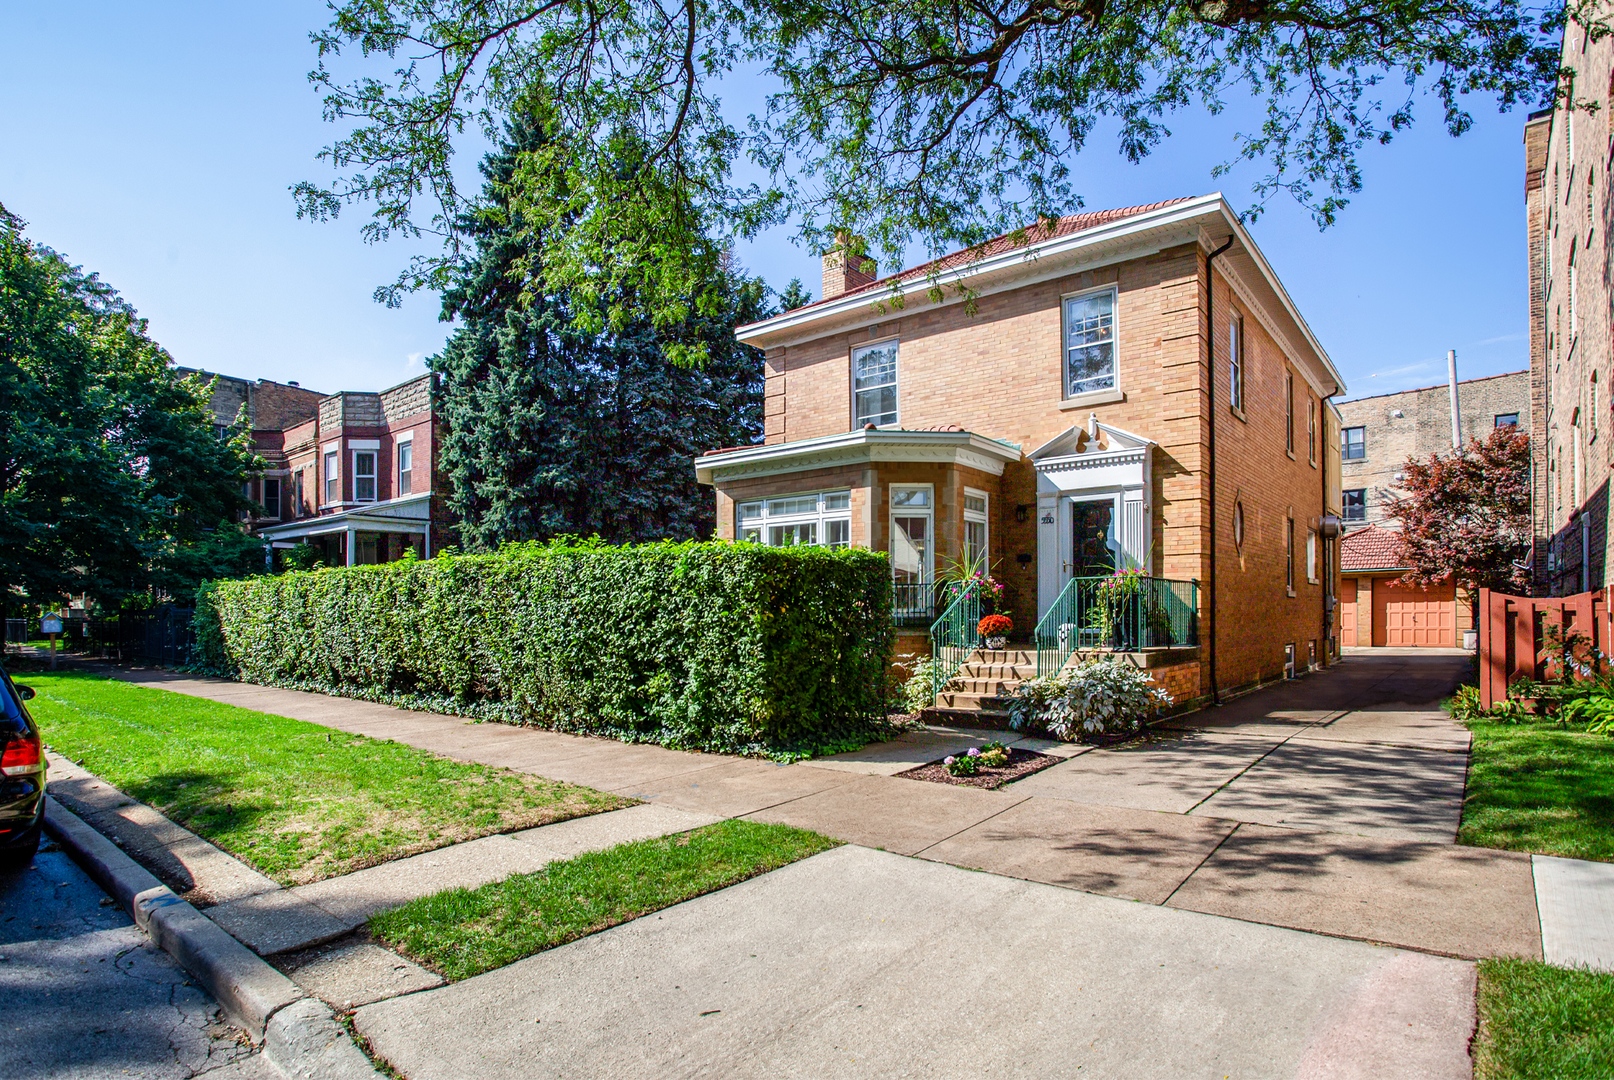 3 House in Edgewater